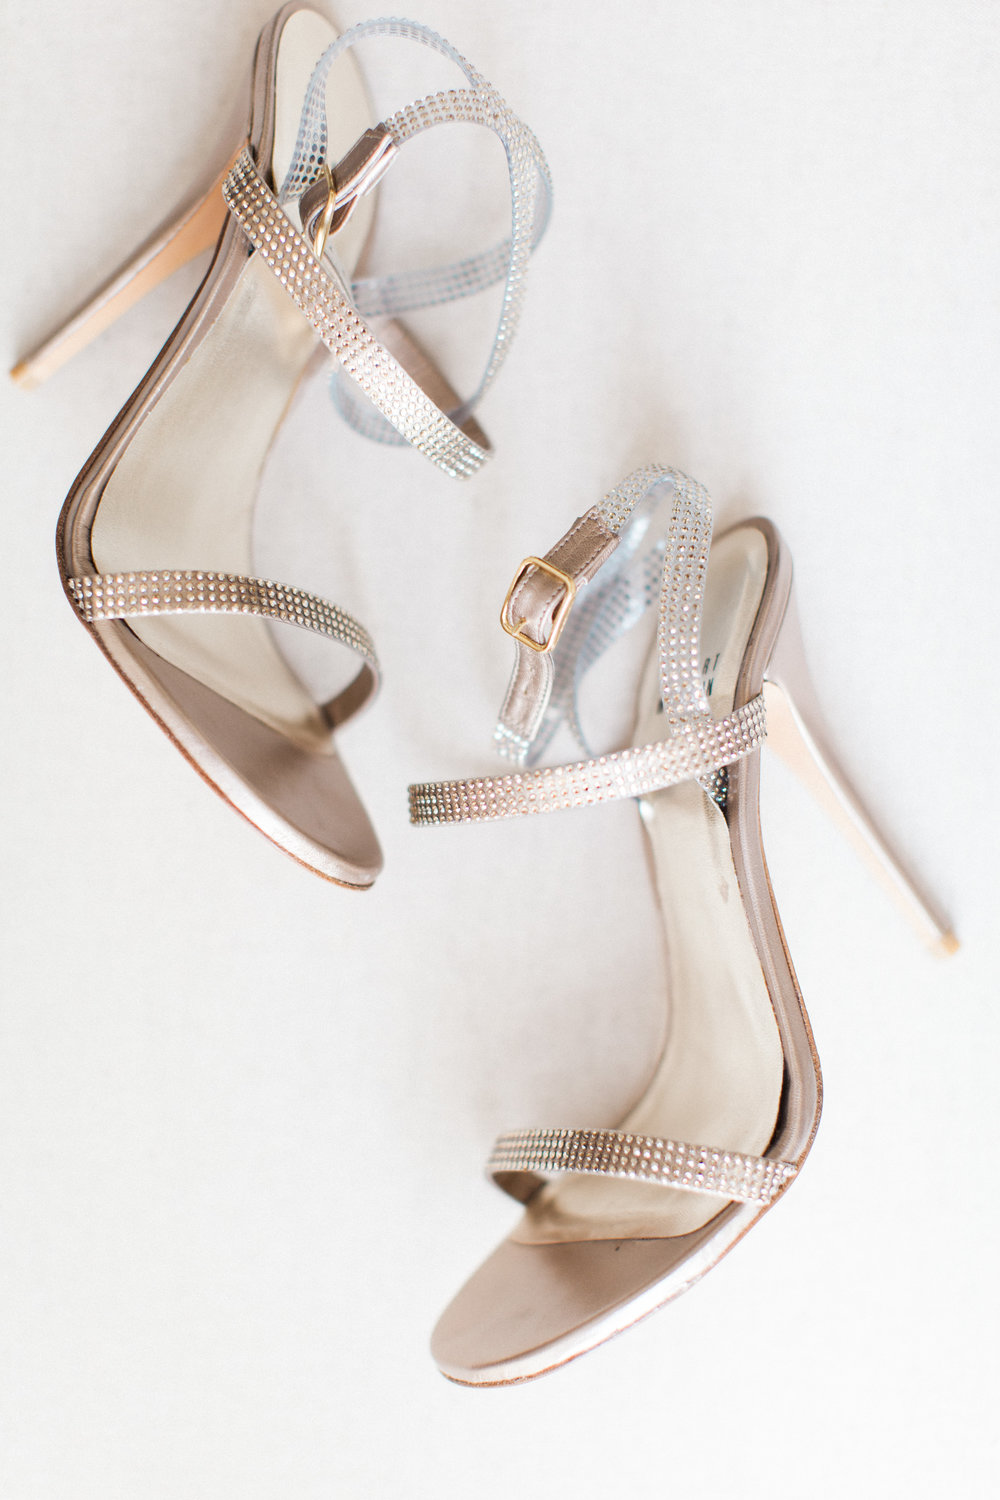 wedding shoes, wedding planner, phoenix wedding, scottsdale wedding, arizona wedding, arizona wedding planner, destination wedding